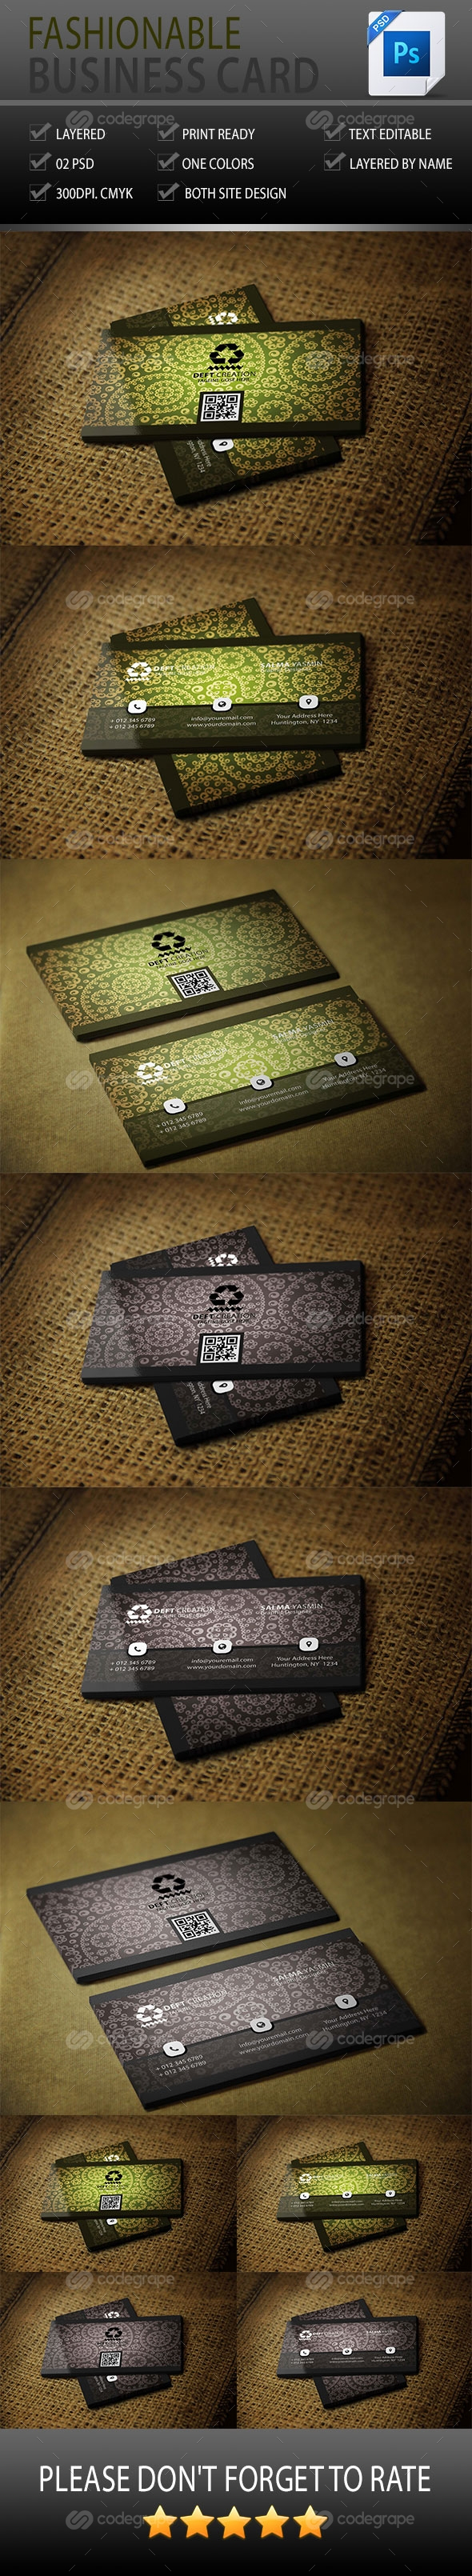 Fashionable Business Card Vol-1.0